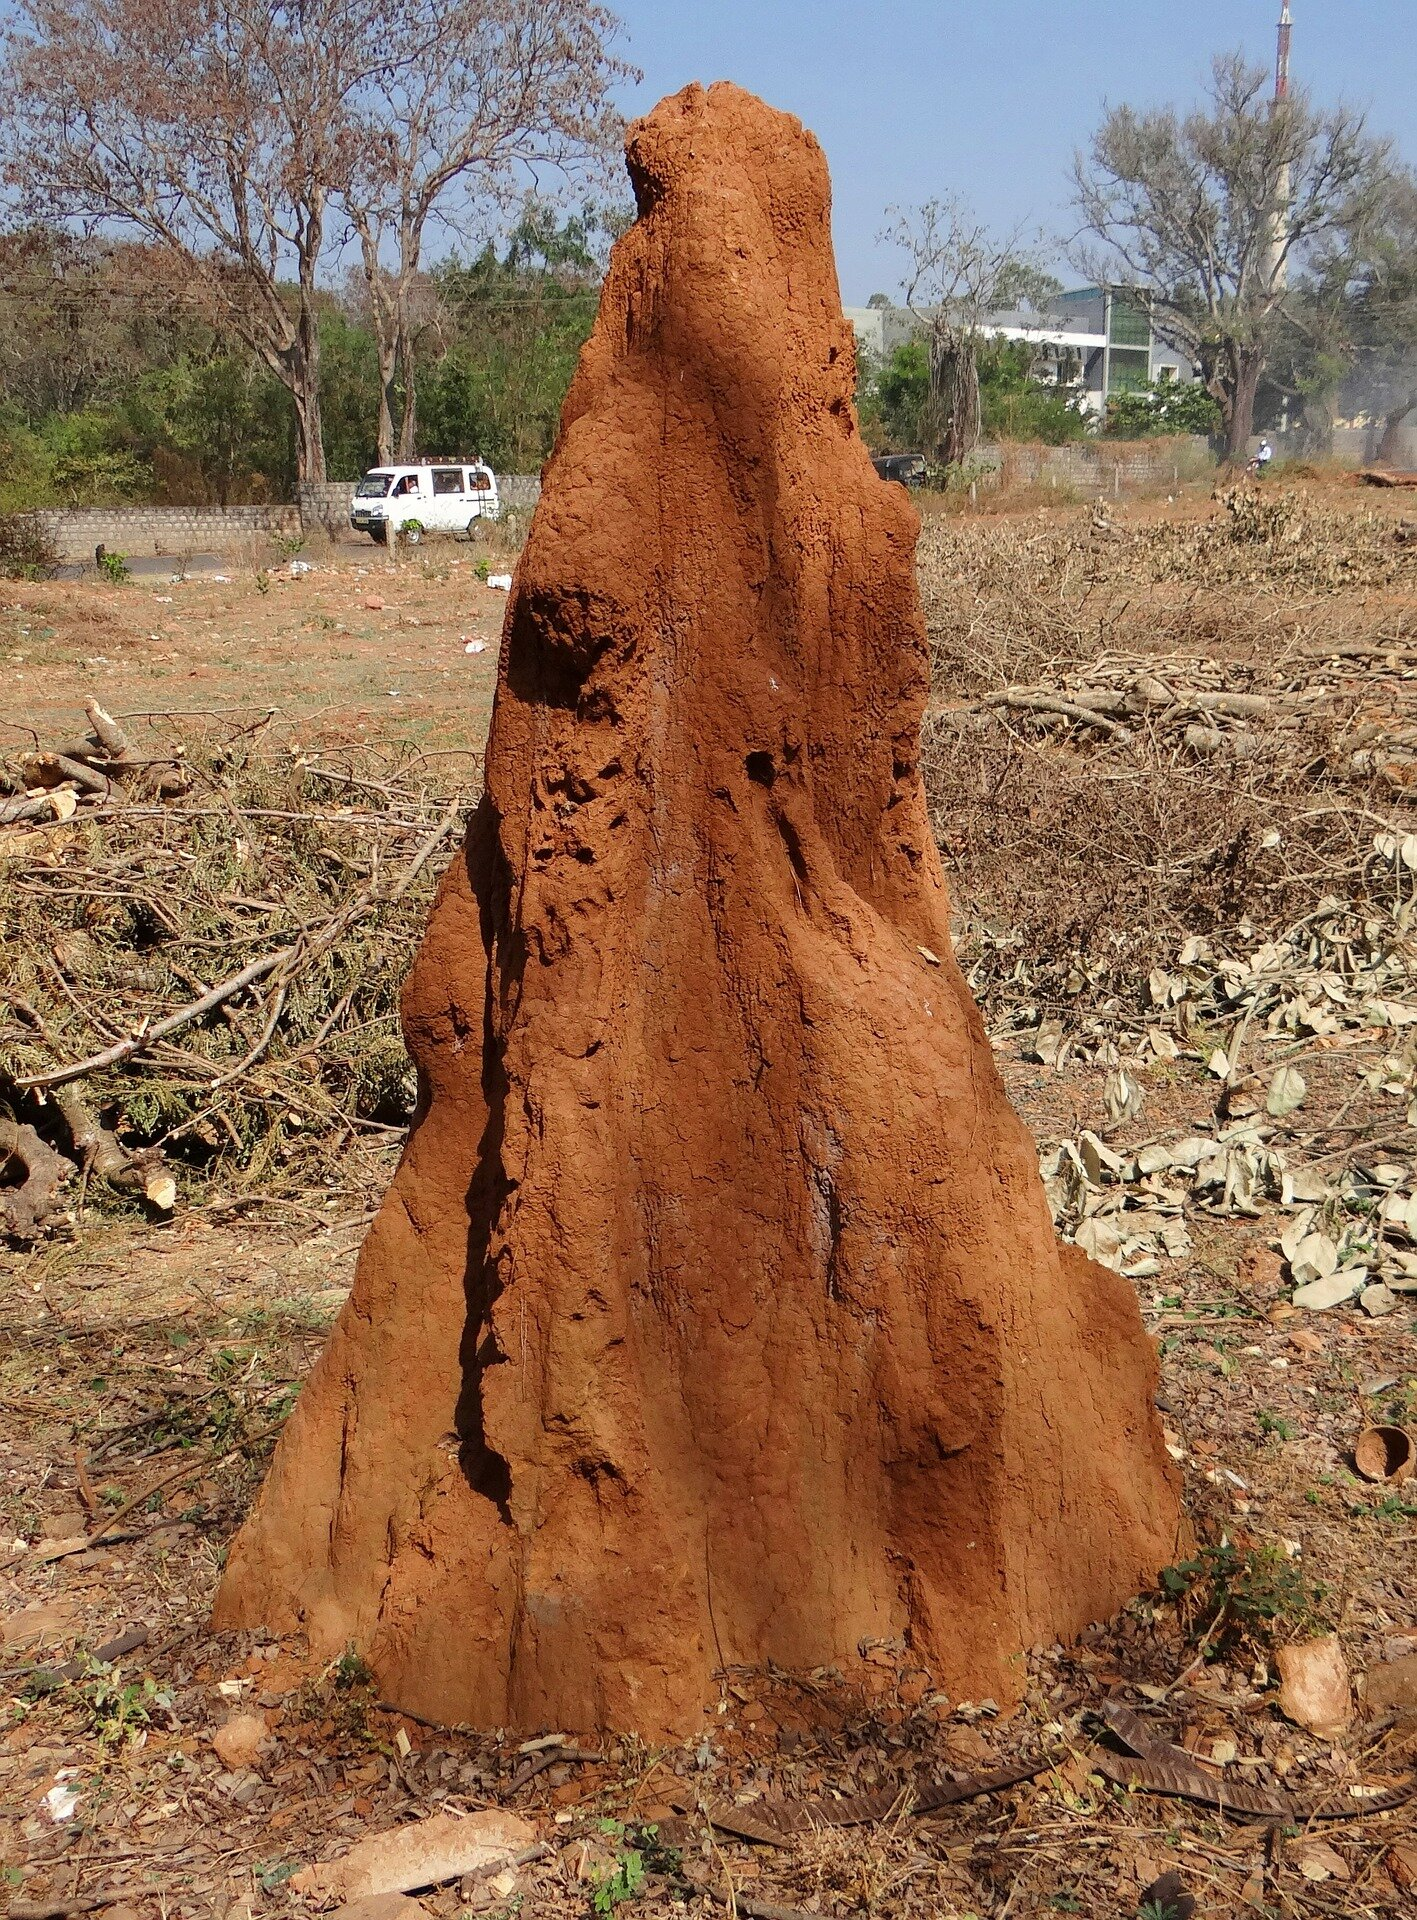 Let S Mimic Termite Nests To Keep Human Buildings Cool